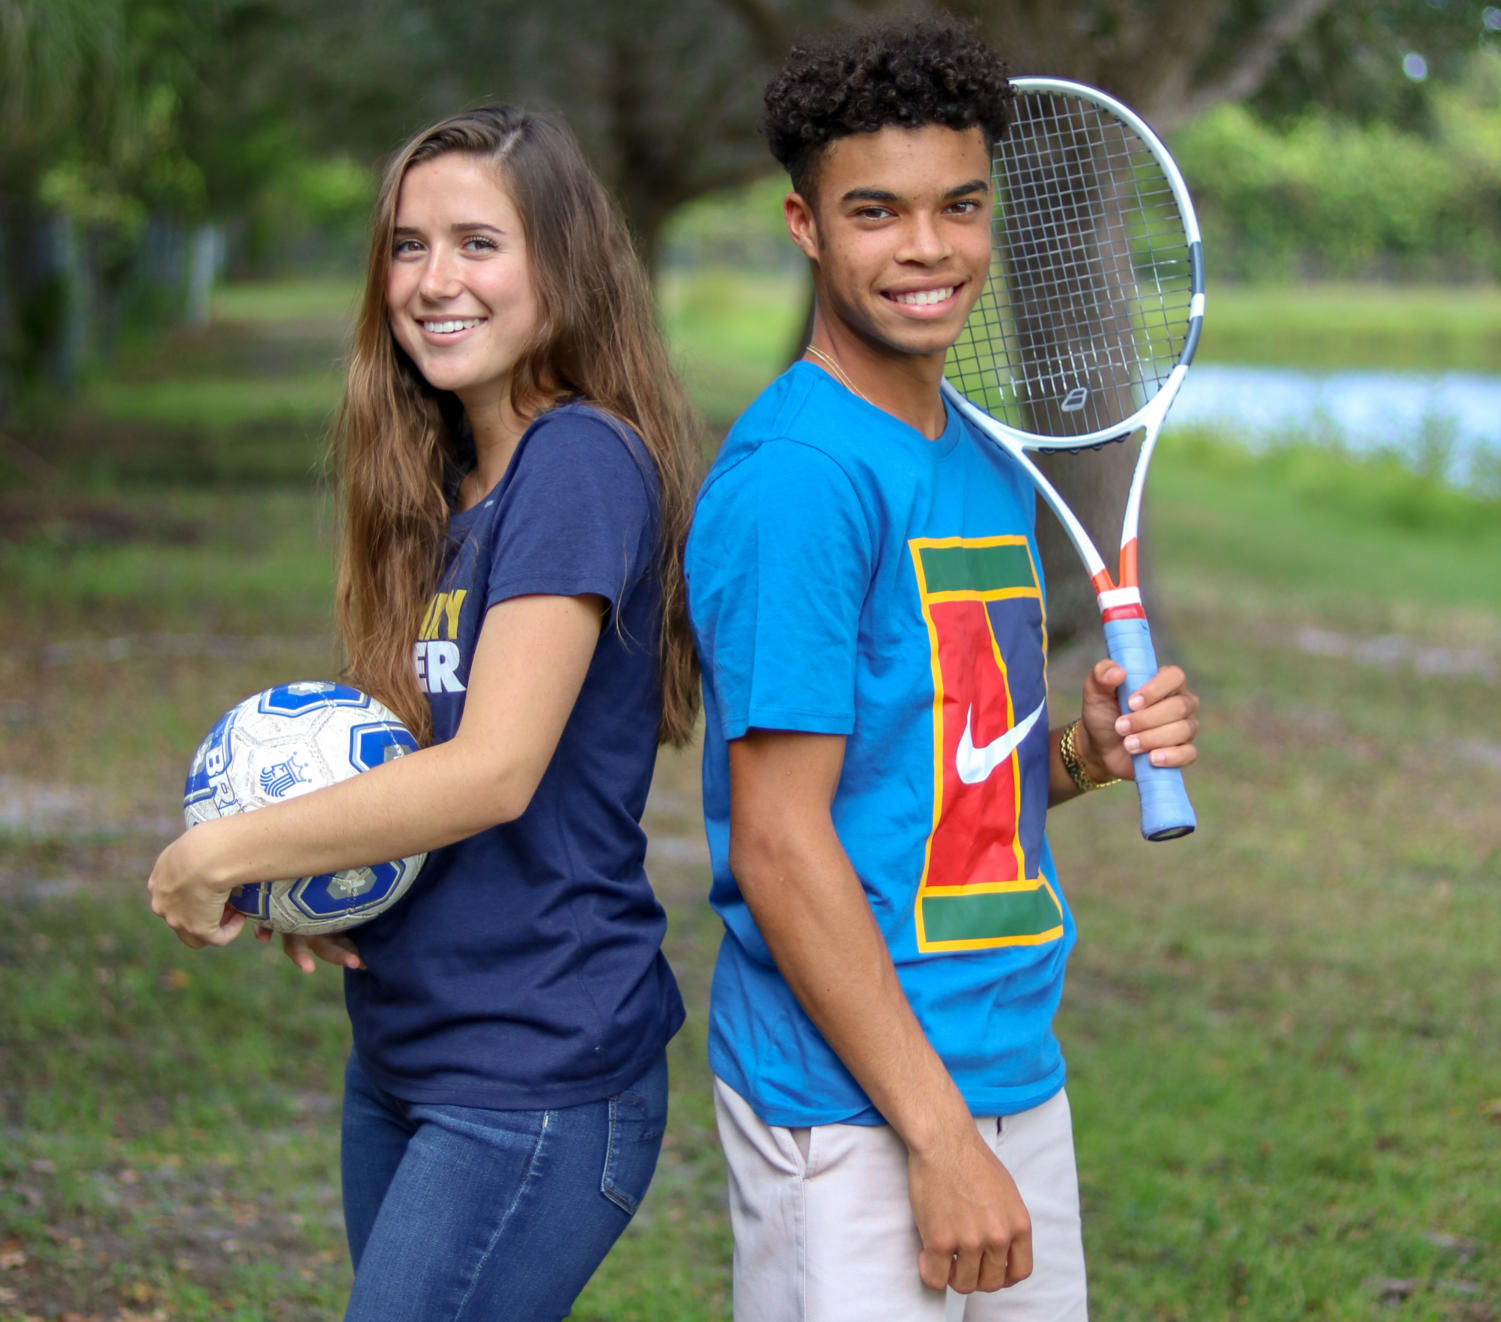 High school soccer player Jessica Baez and club tennis player Nick Olomu.